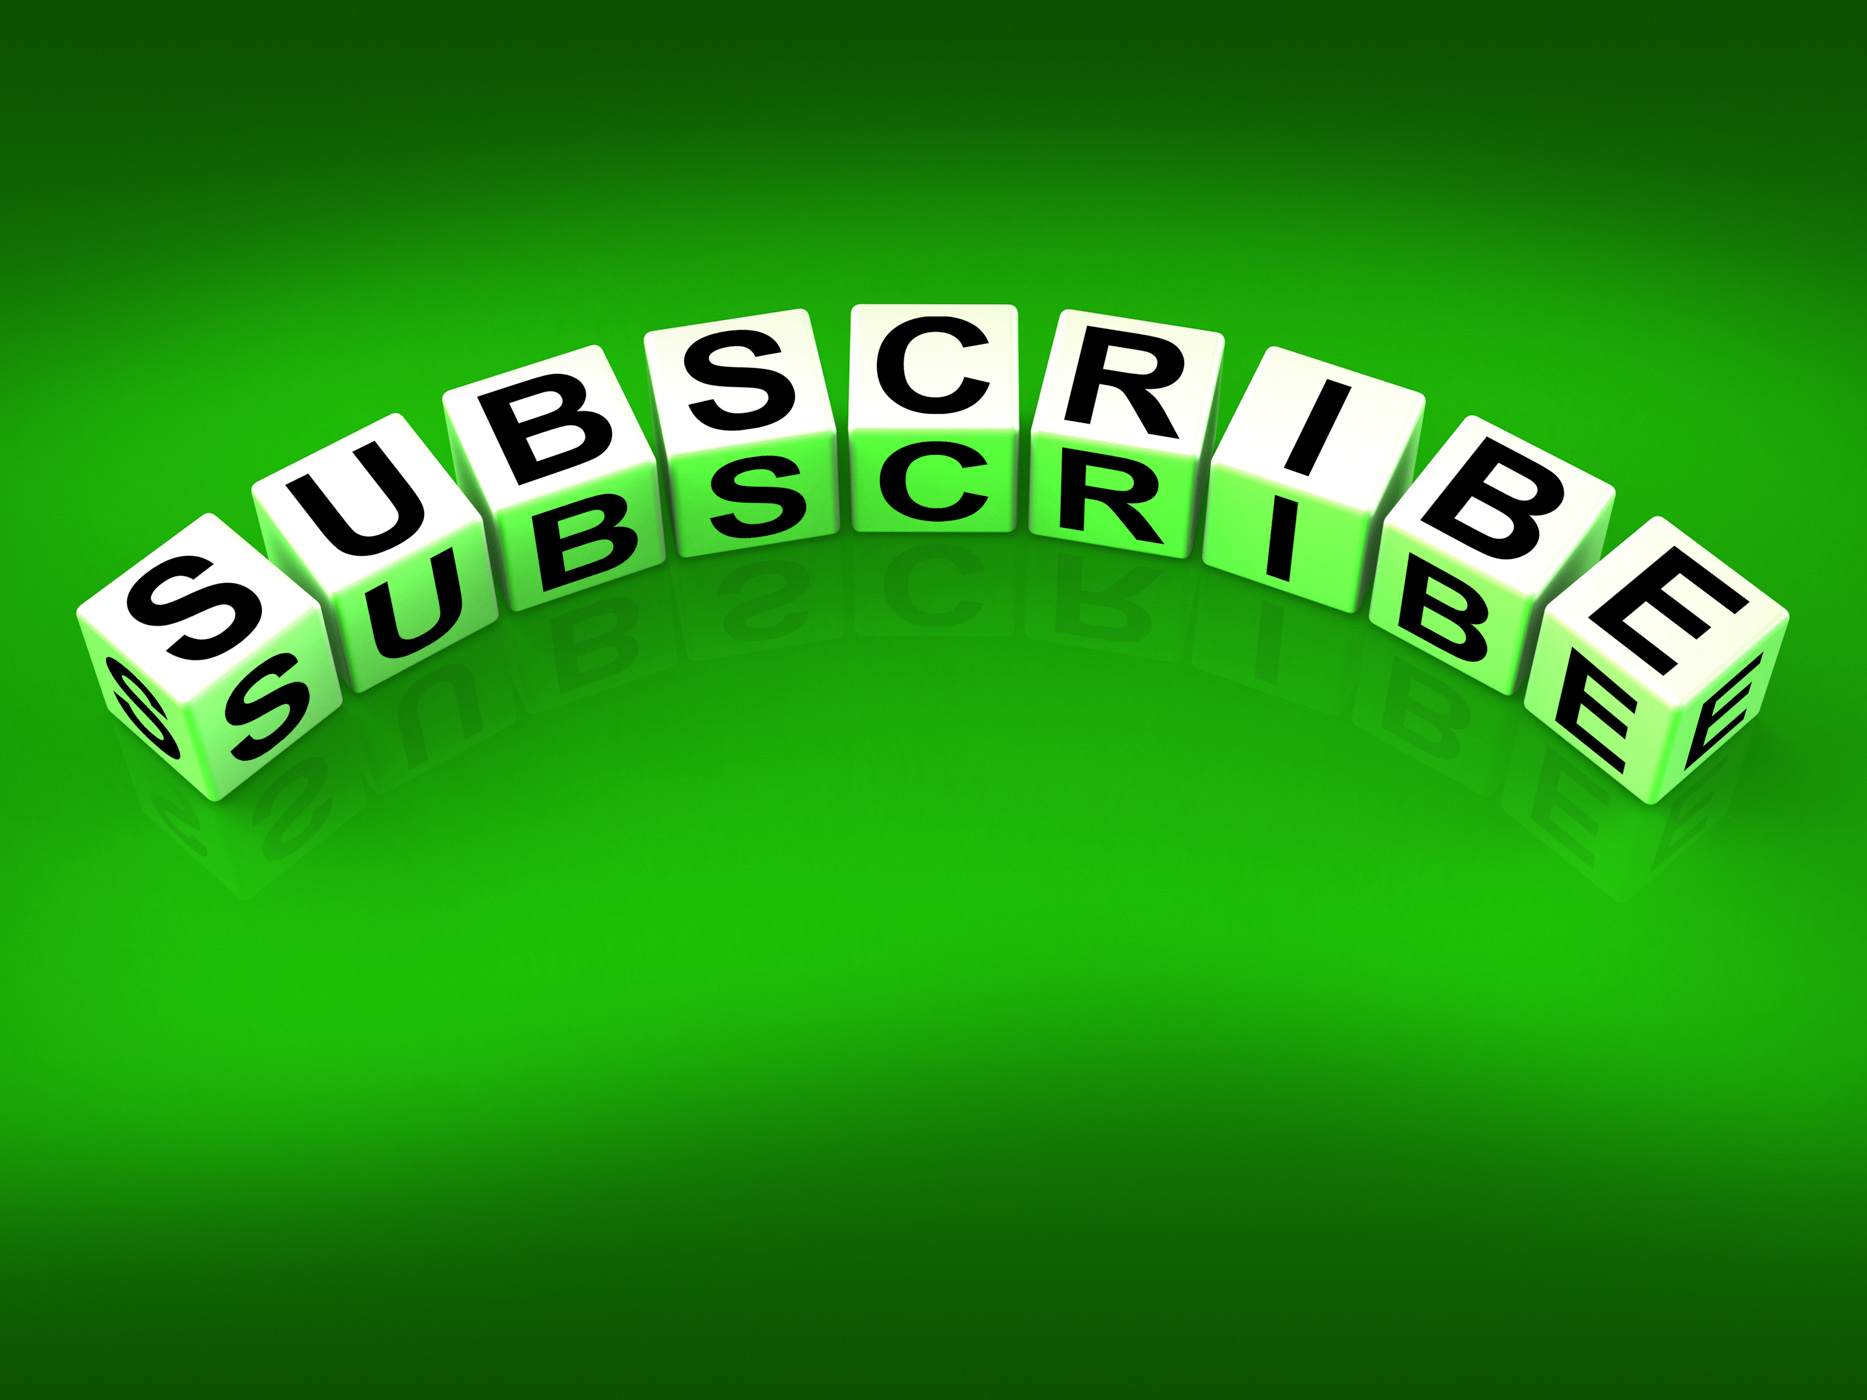 Subscribe Blocks Represent to Sign up or Apply, Subscribing, Subscribe, Signup, Sign, HQ Photo